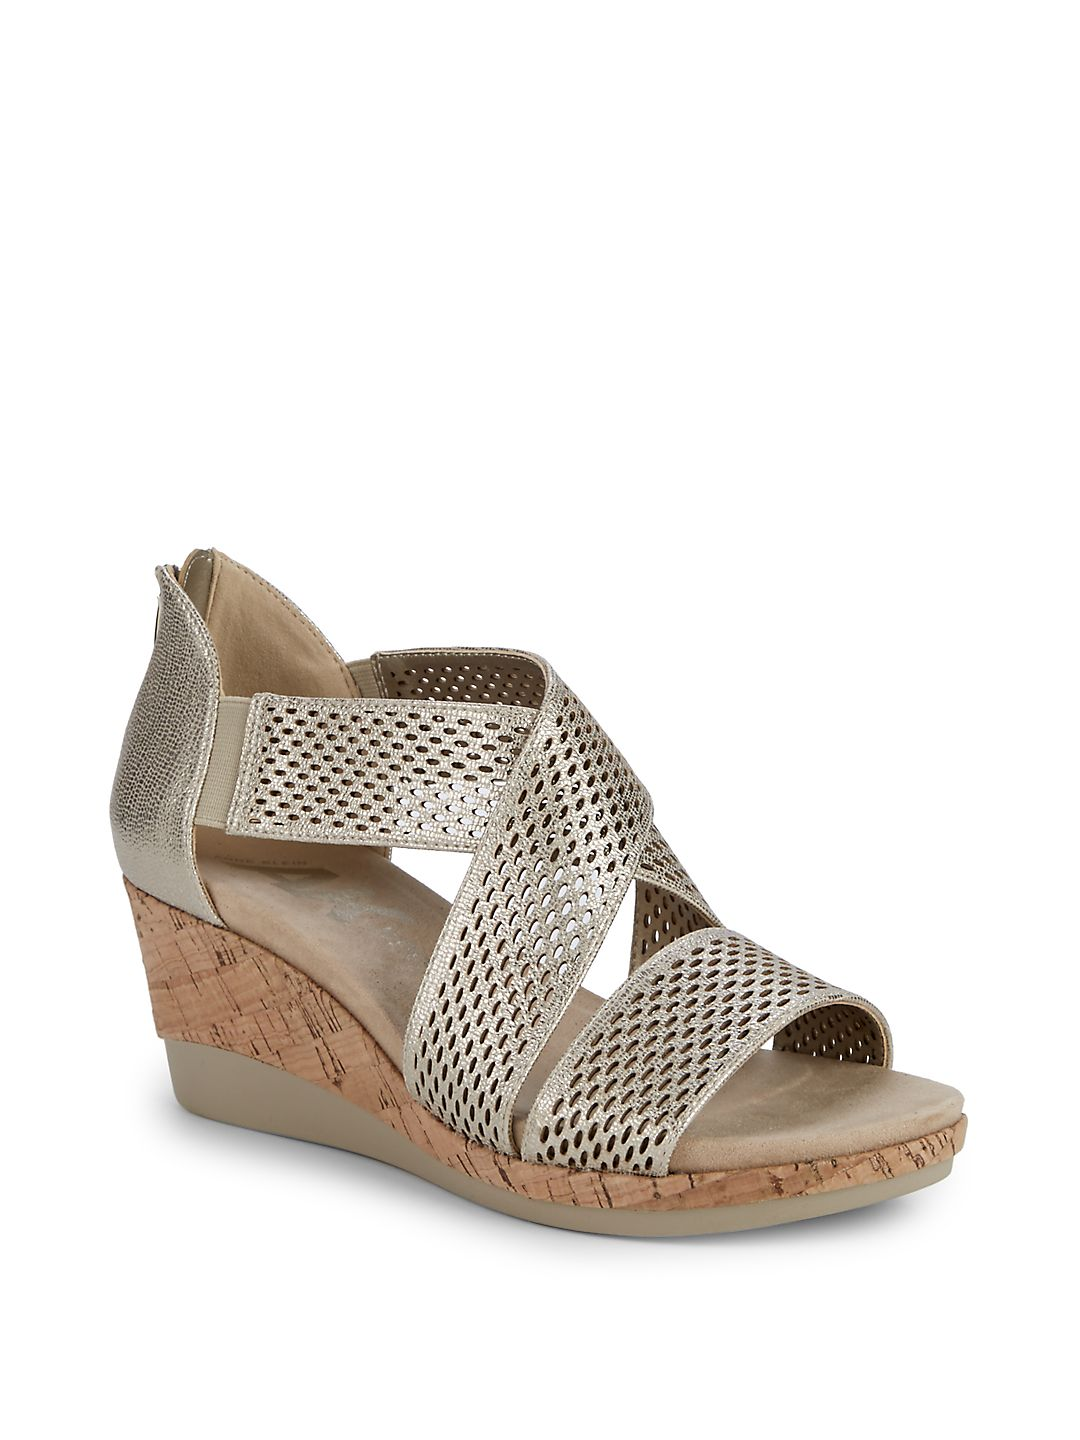 Pebbles Wedge Heel Faux Leather Sandals